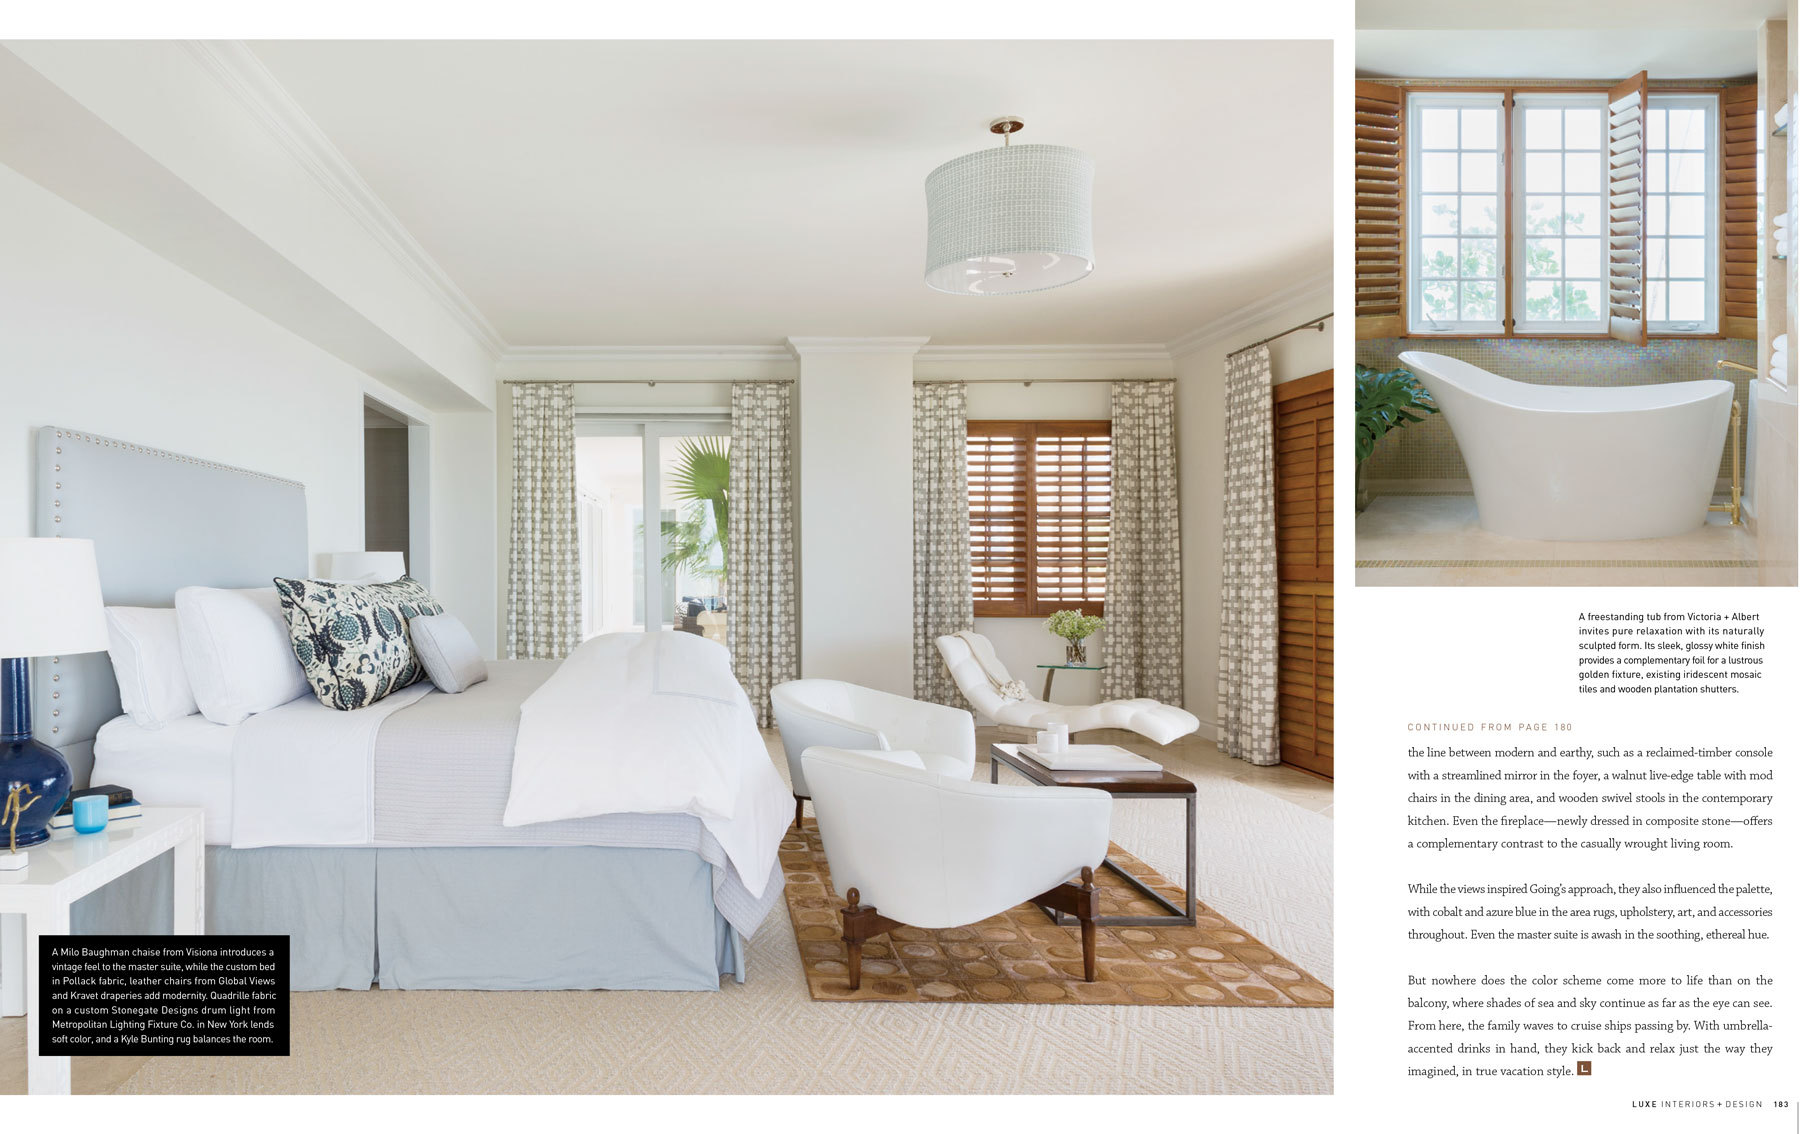 Luxe Interiors + Design. Summer 2014. Find More Images Of Limelight Here